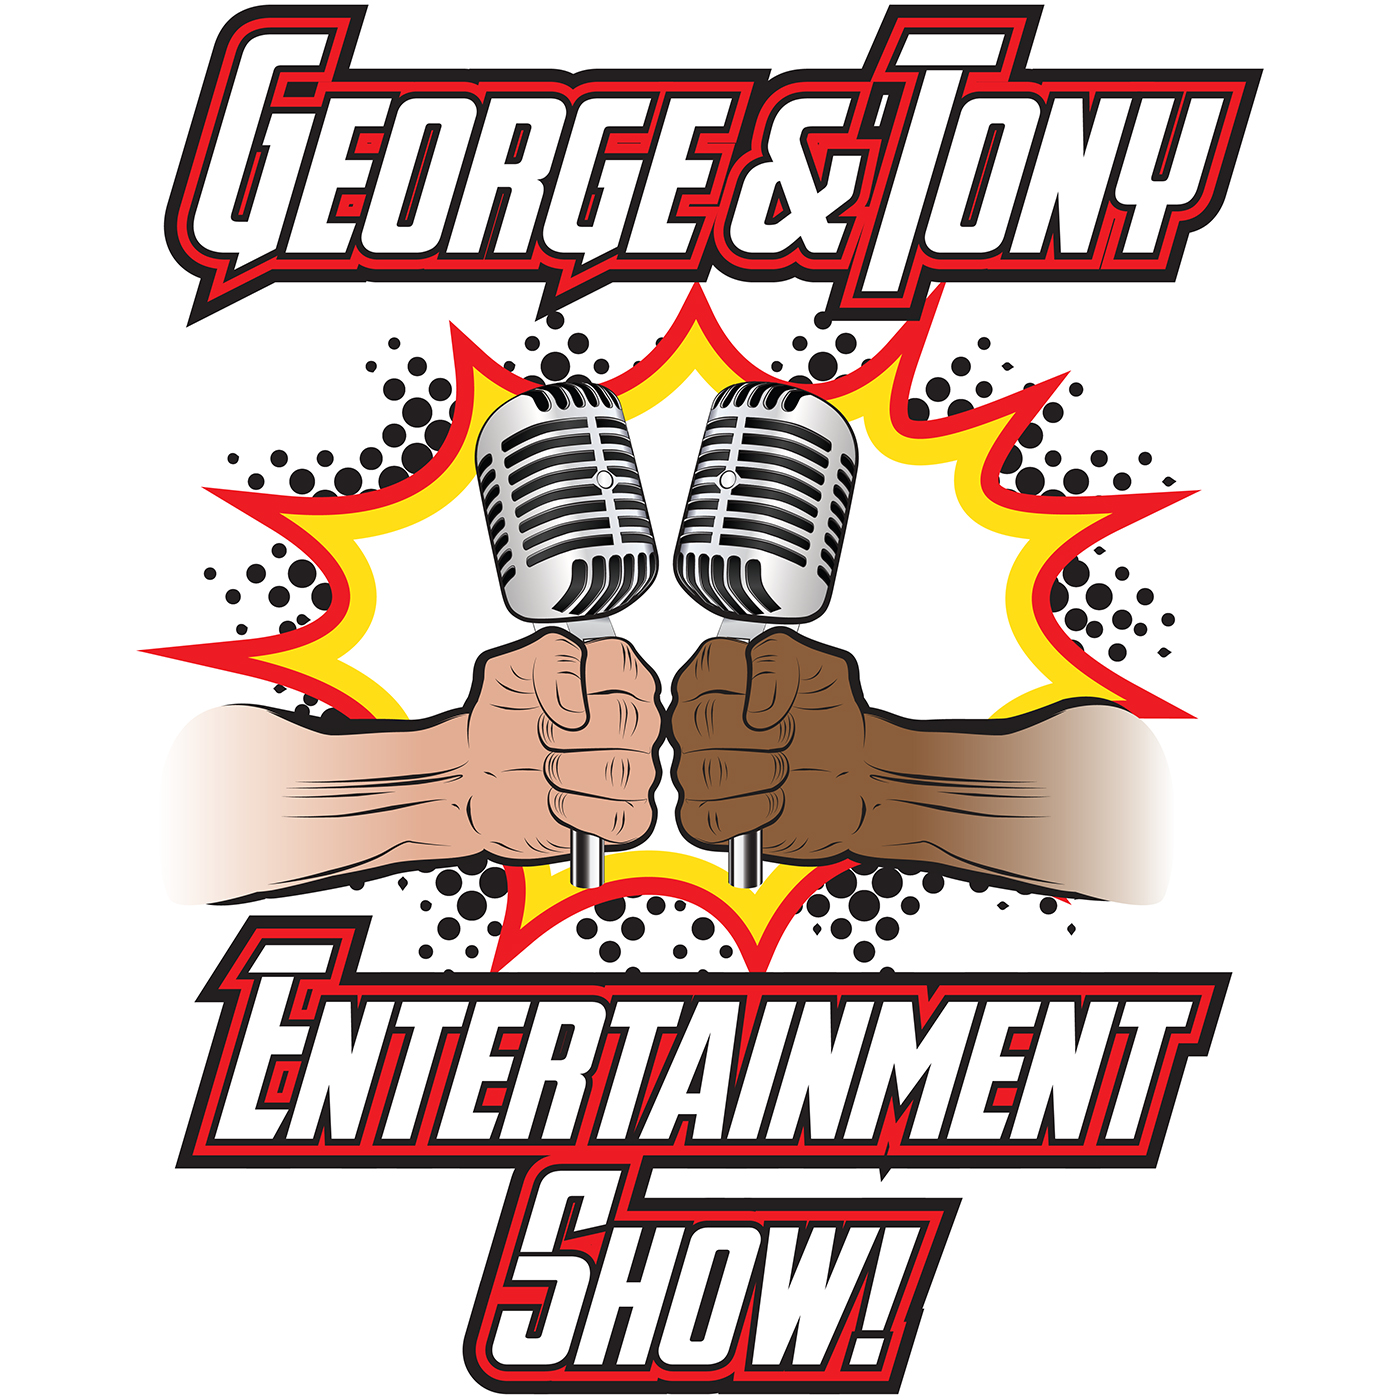 George and Tony Entertainment Show #134